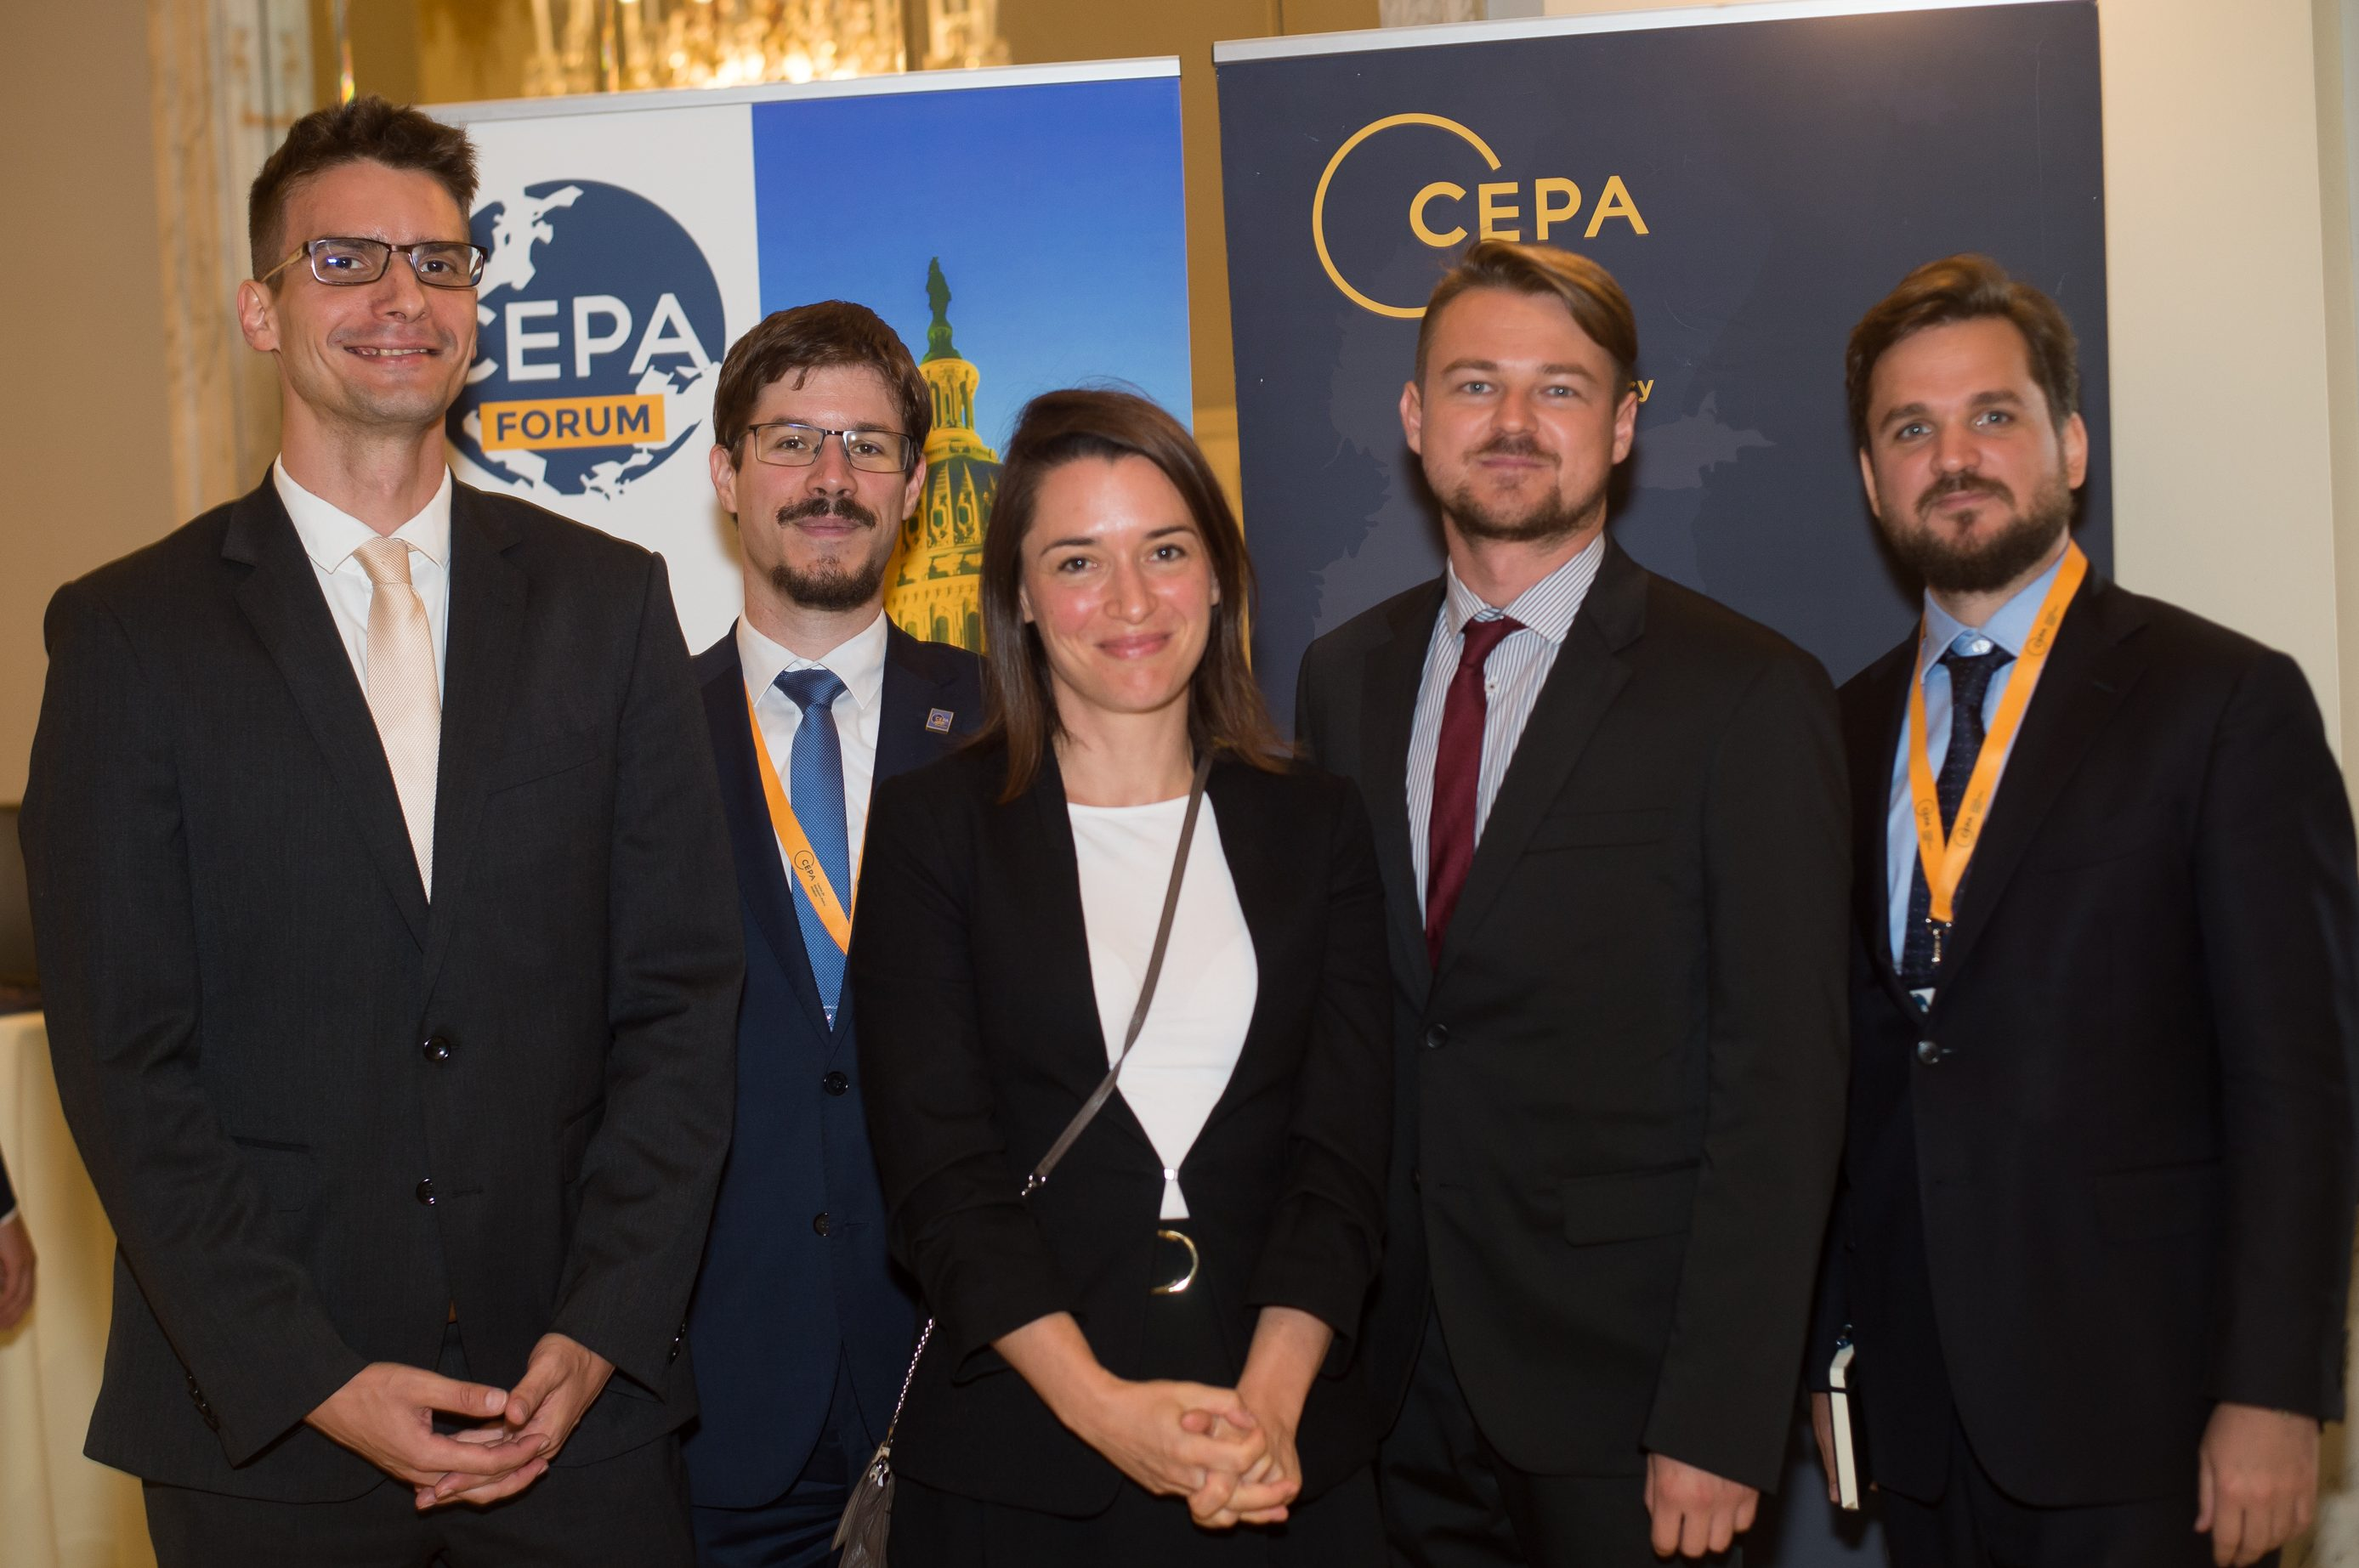 Hungarian Young Professionals Join CEPA Forum in Washington